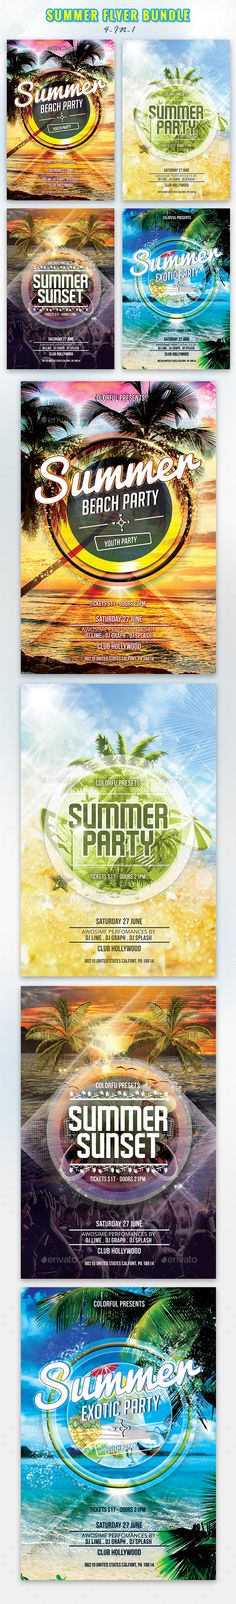 Summer Flyer Templates PSD Bundle. Download here: https://graphicriver.net/item/summer-flyer-bundle/17459640?ref=ksioks